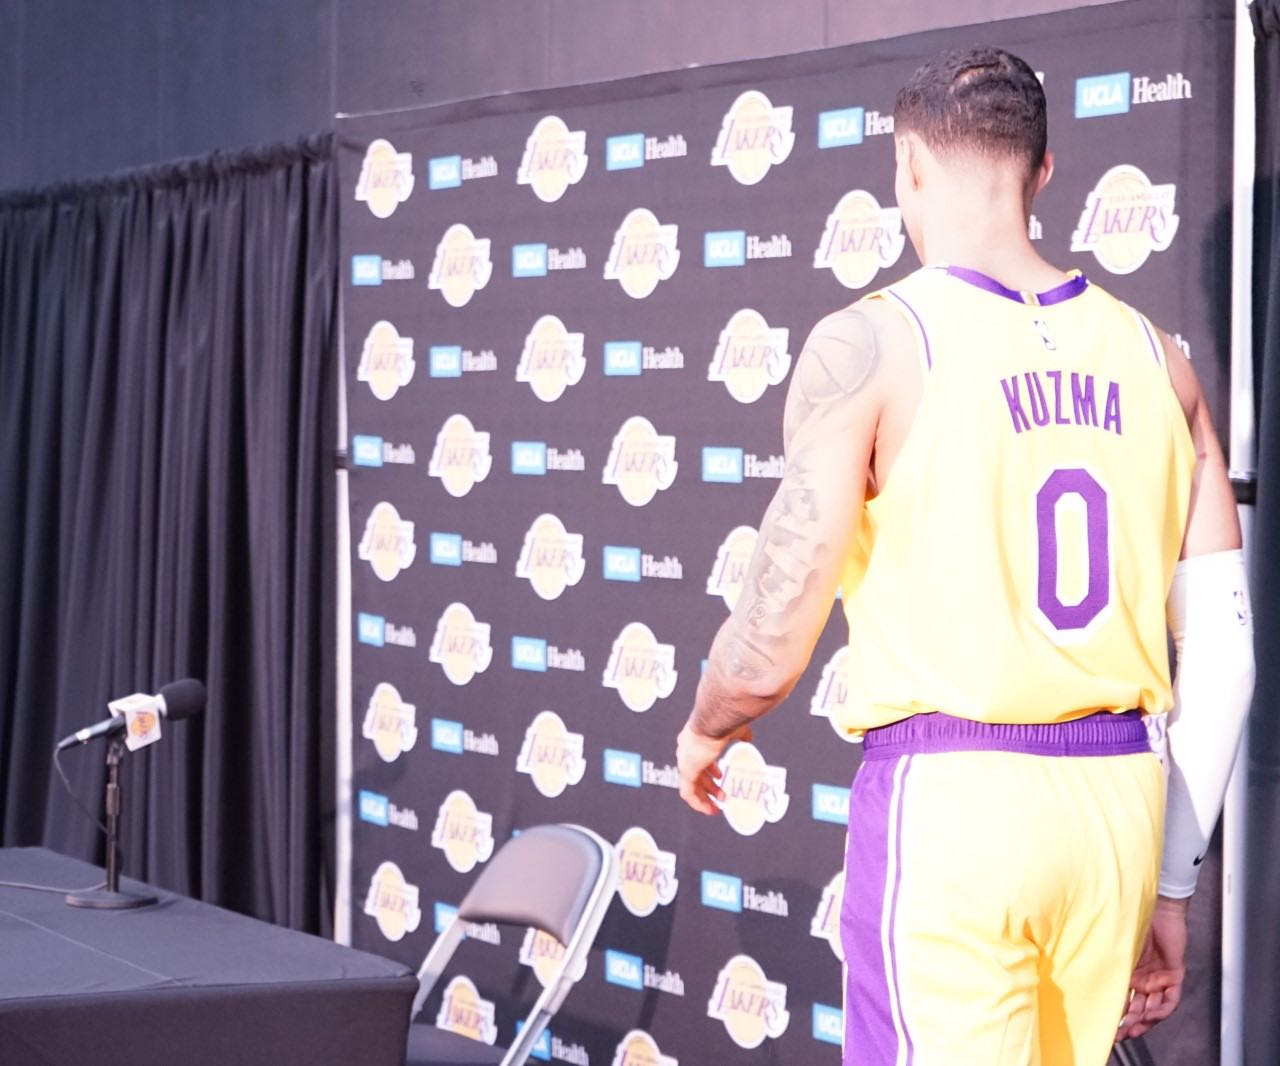 fe845a085548b Kyle Kuzma walks to the podium at Lakers media day at the UCLA Health  Training Facility in El Segundo, Calf. (Photo by Lauren A. Jones/L.A.  Sentinel)